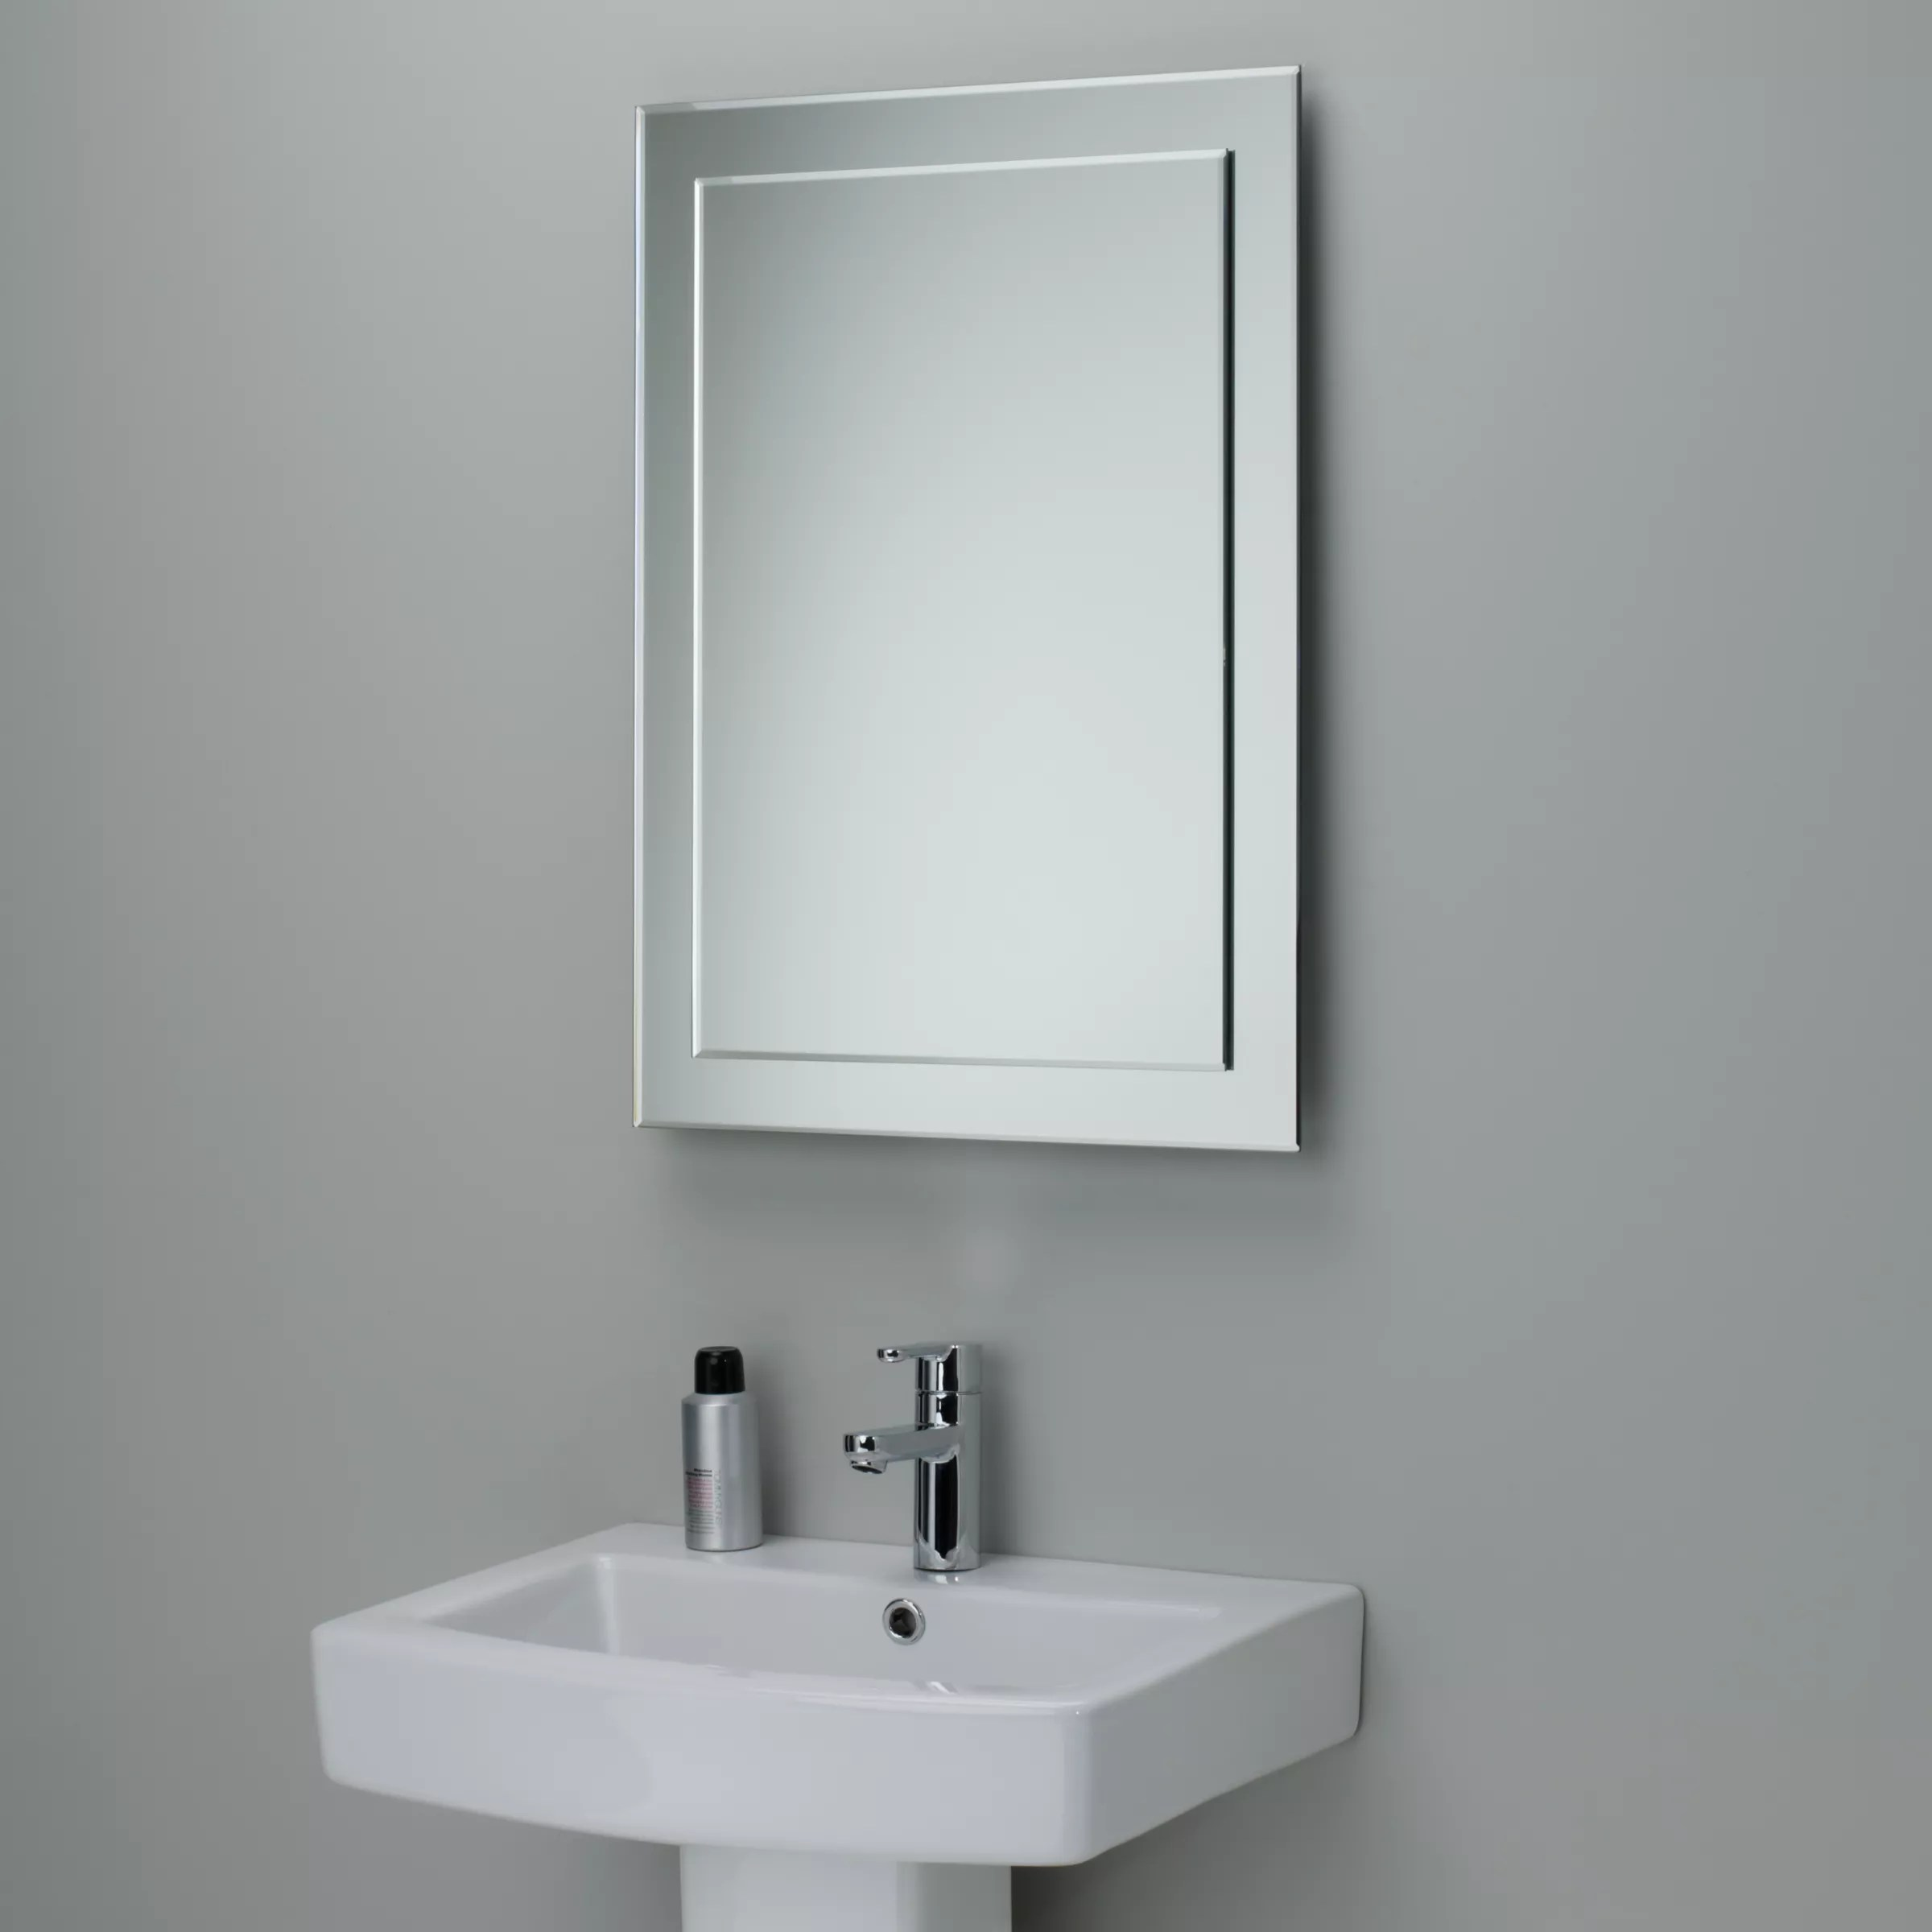 Buy john lewis duo wall bathroom mirror 70 x 50cm john